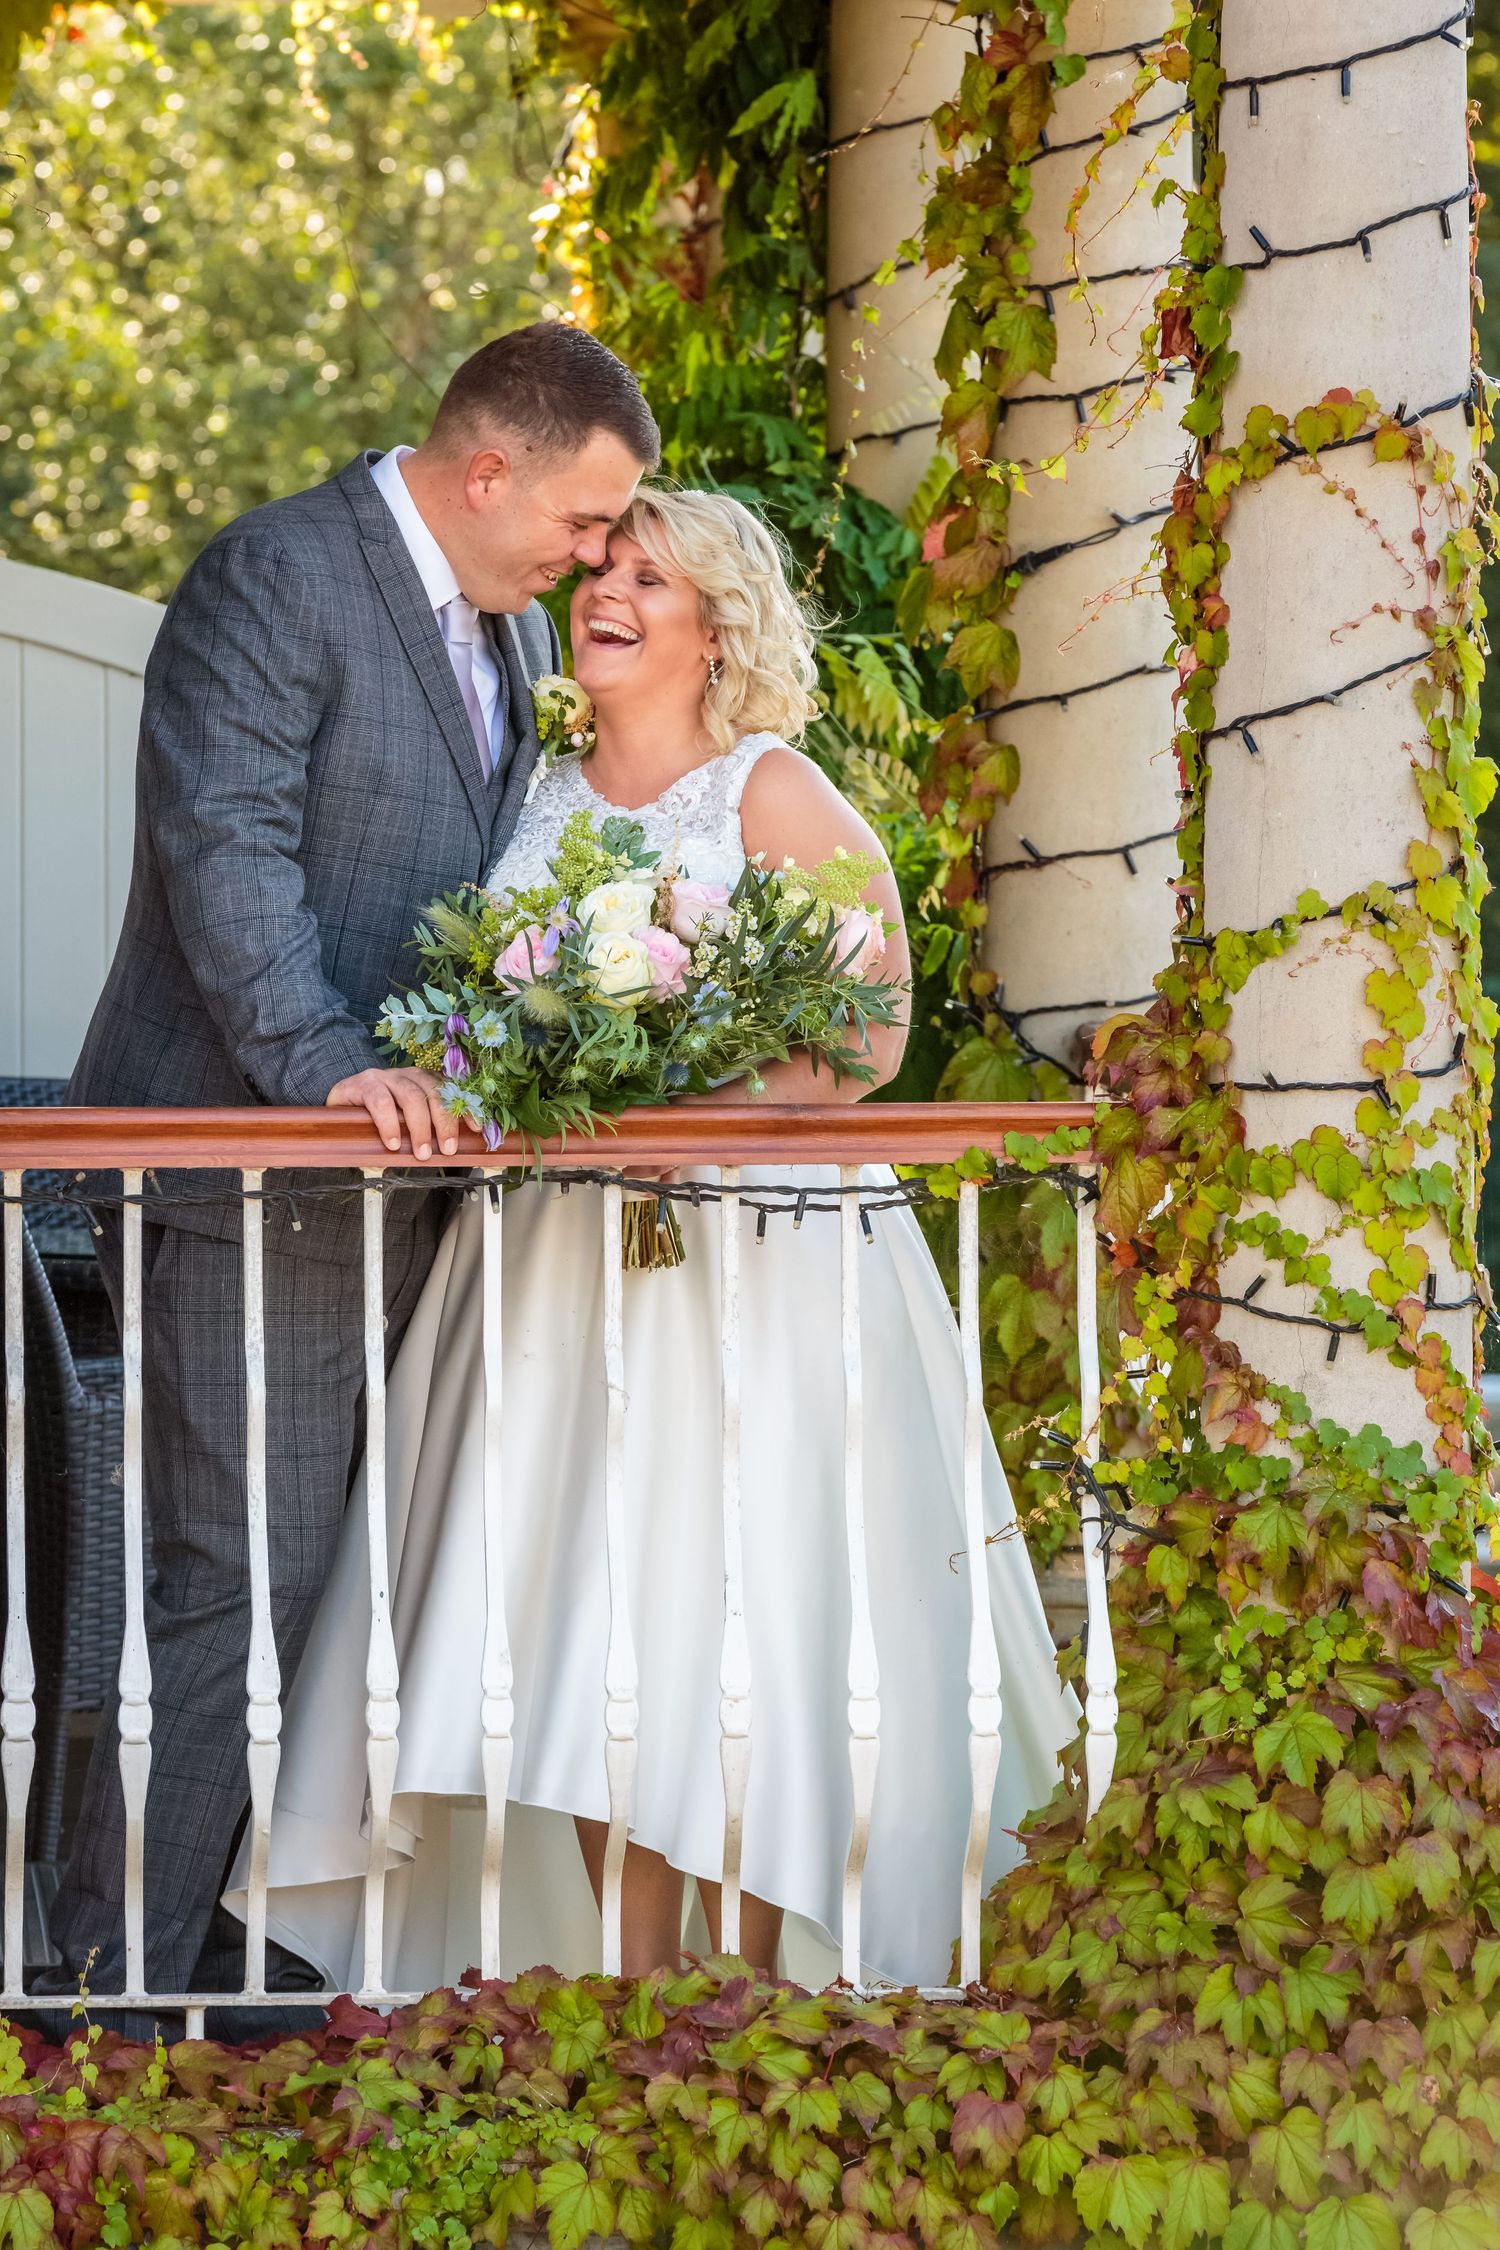 cute shot of the groom smiling and the bride laughing as they touch heads on the ivy covered ribby hall balcony